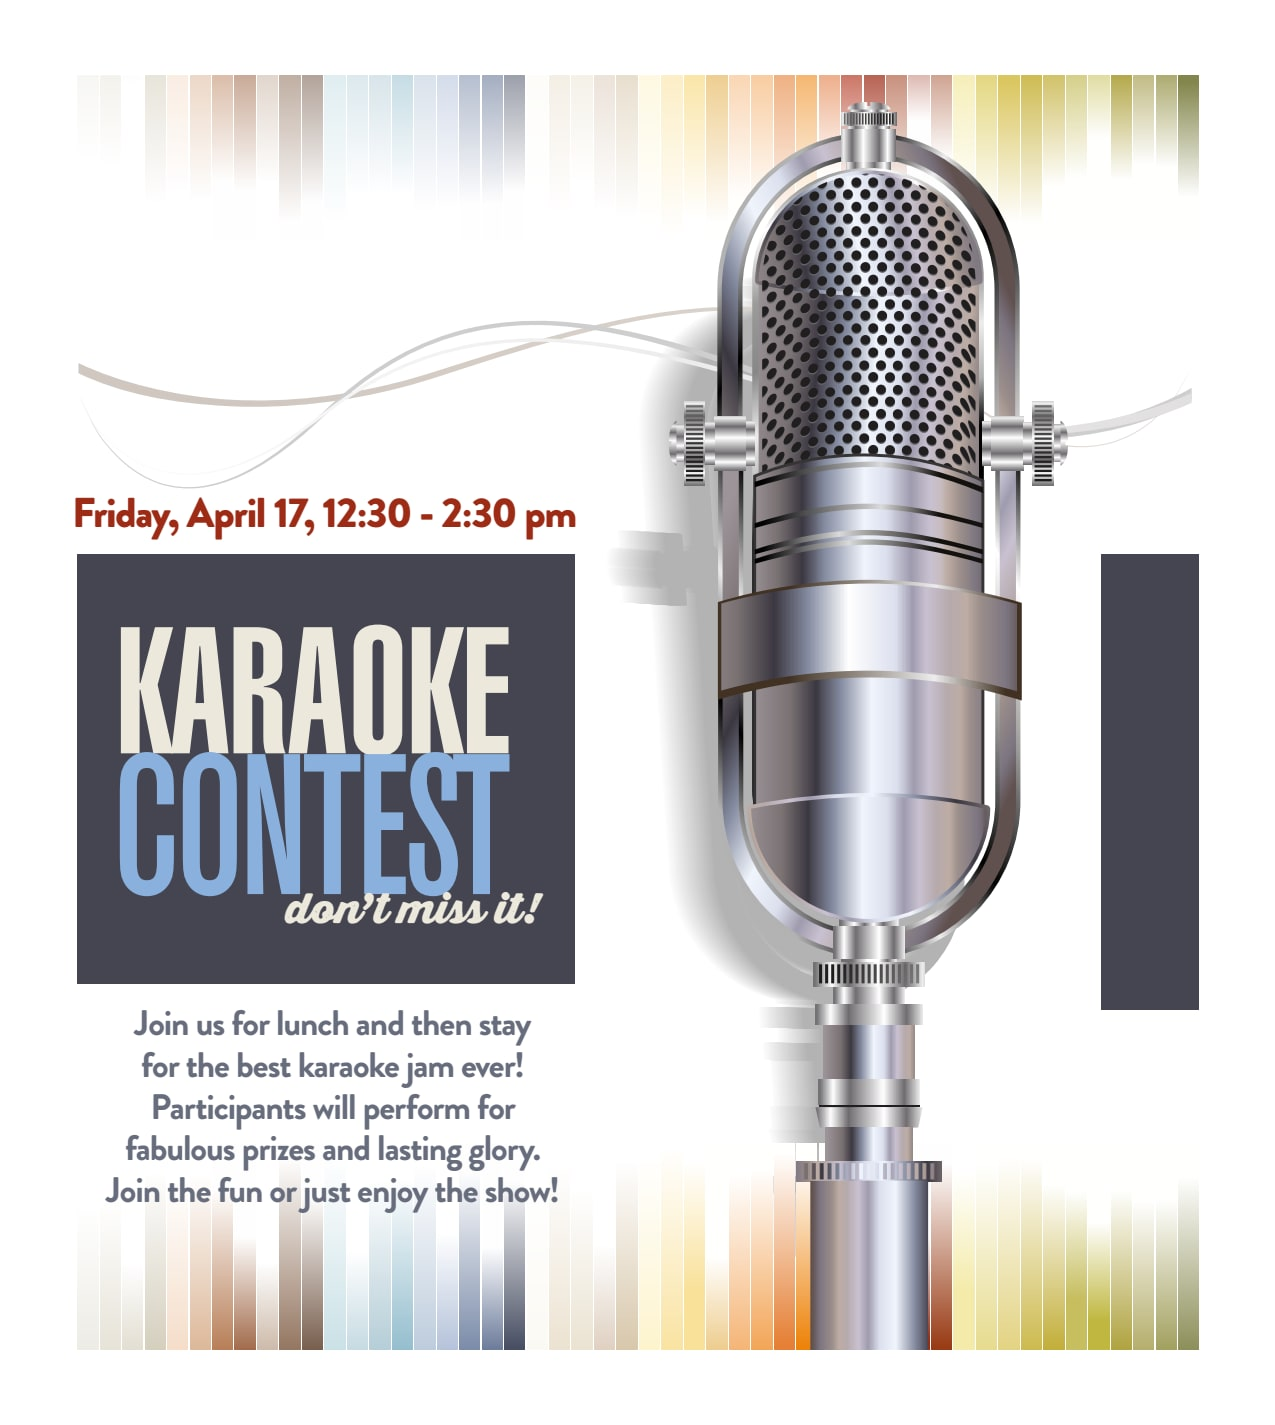 Karaoke Contest - activities at Benton Village of Stockbridge in Stockbridge, GA